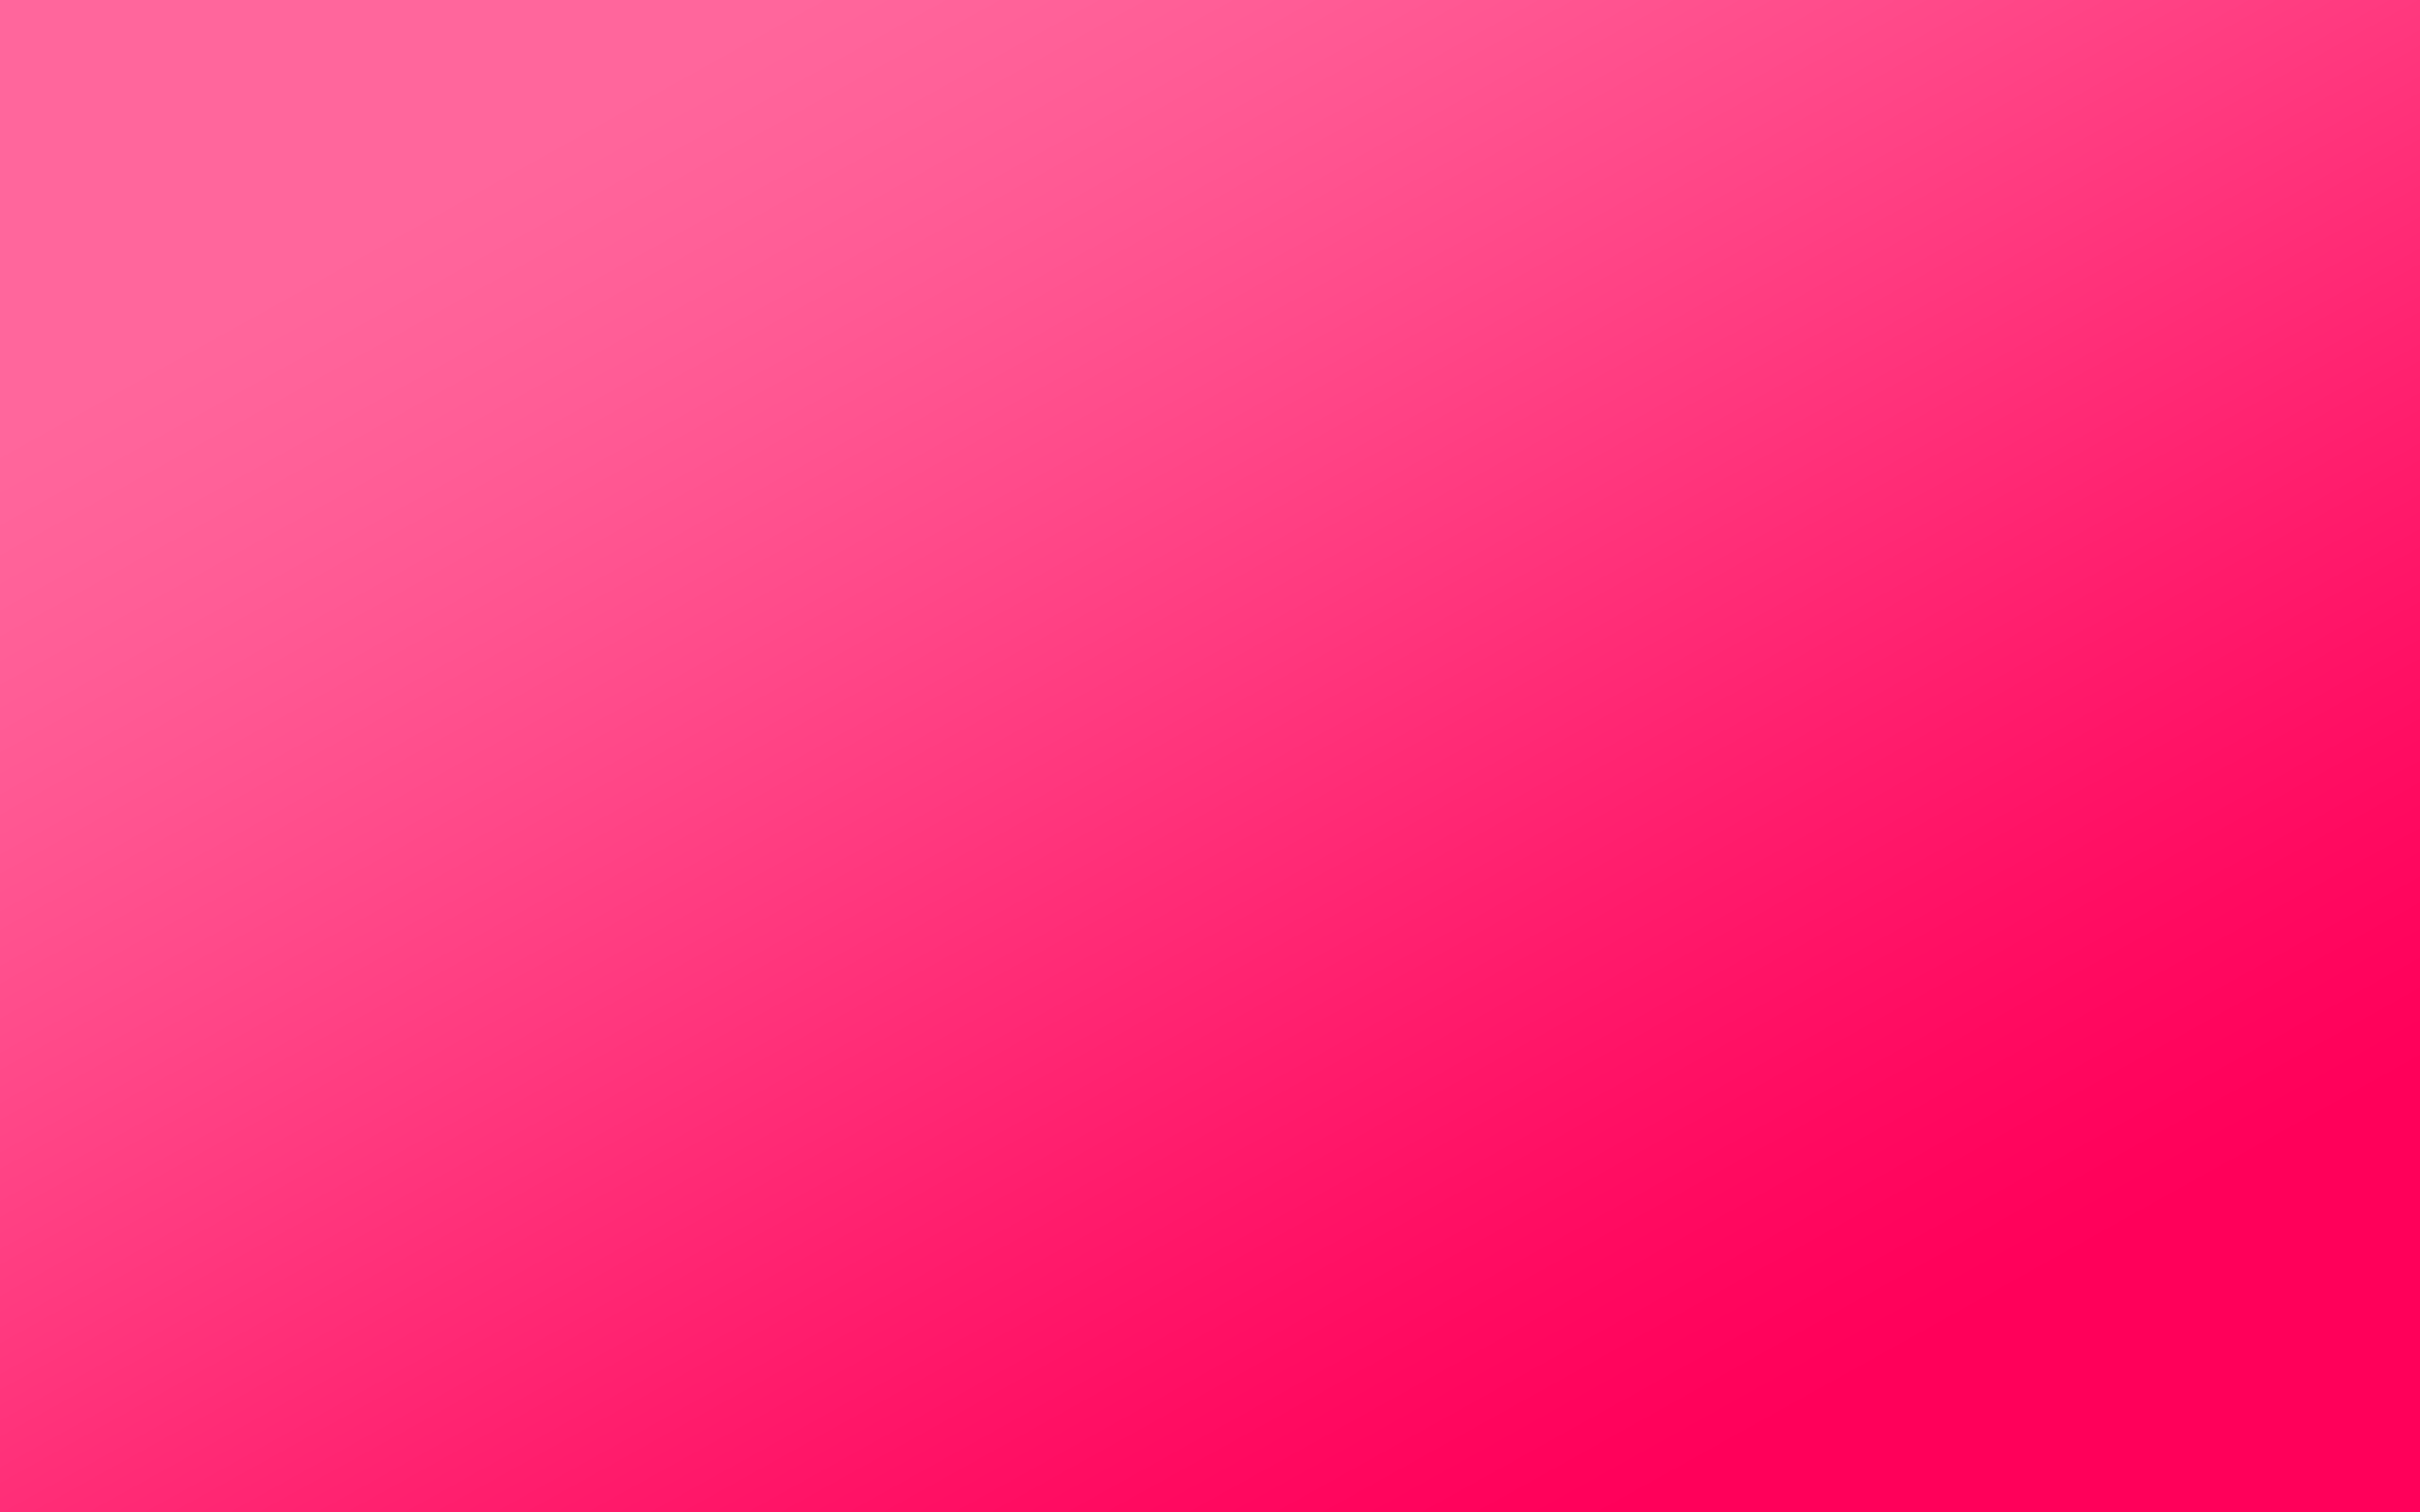 Pink HD Wallpapers 2560x1600